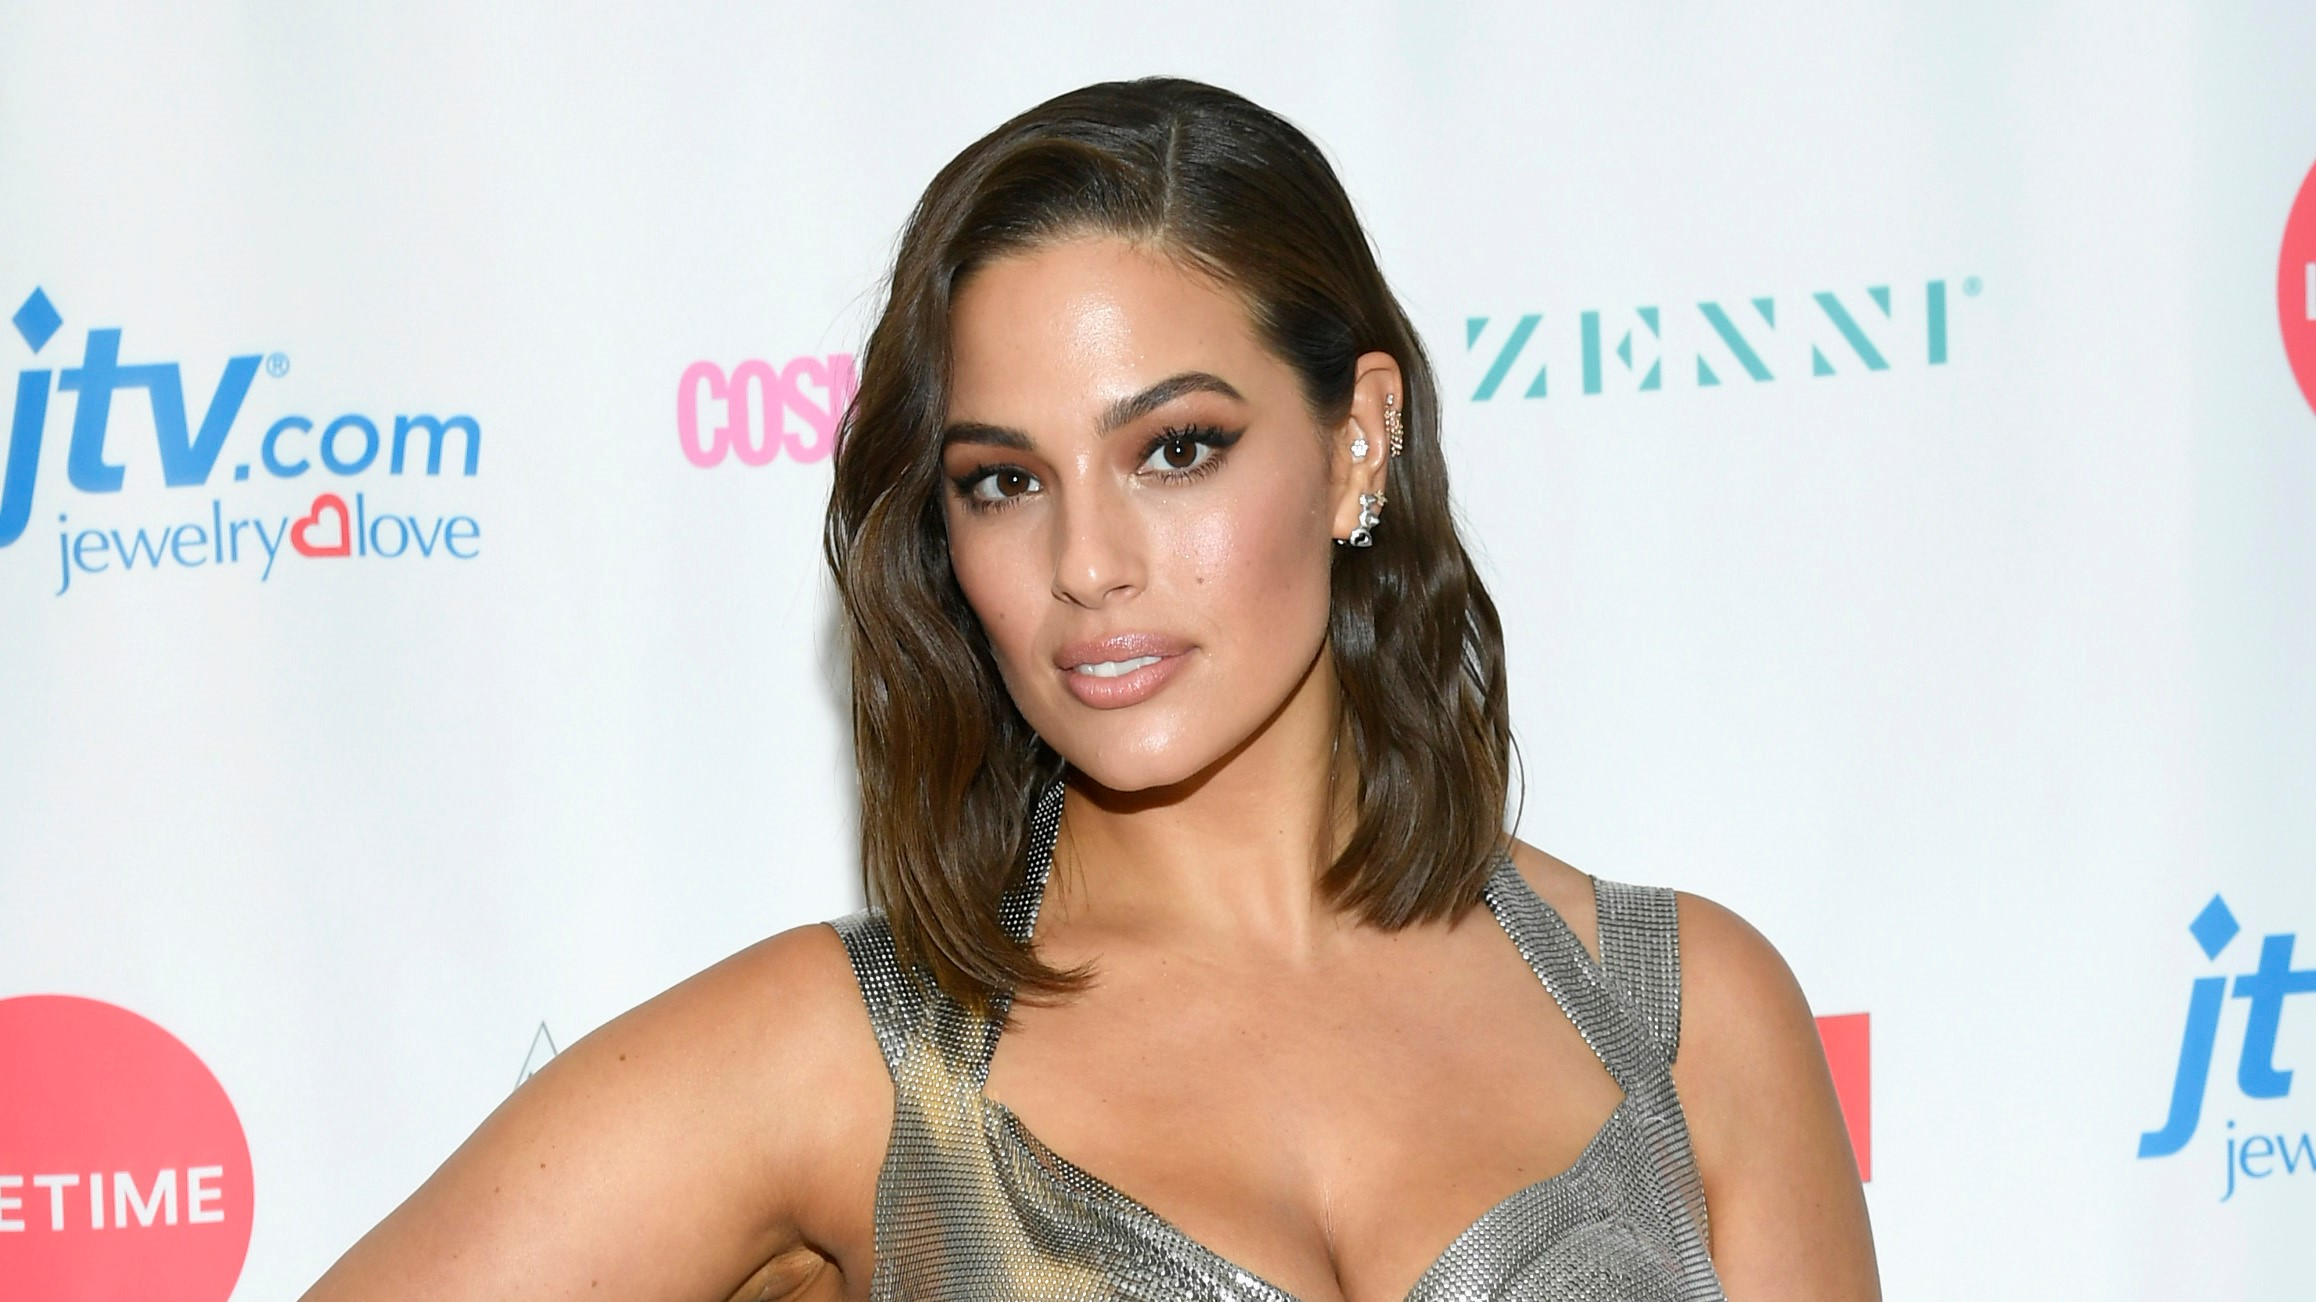 Ashley Graham opens up about body image and sex fears during pregnancy: 'I felt alone'